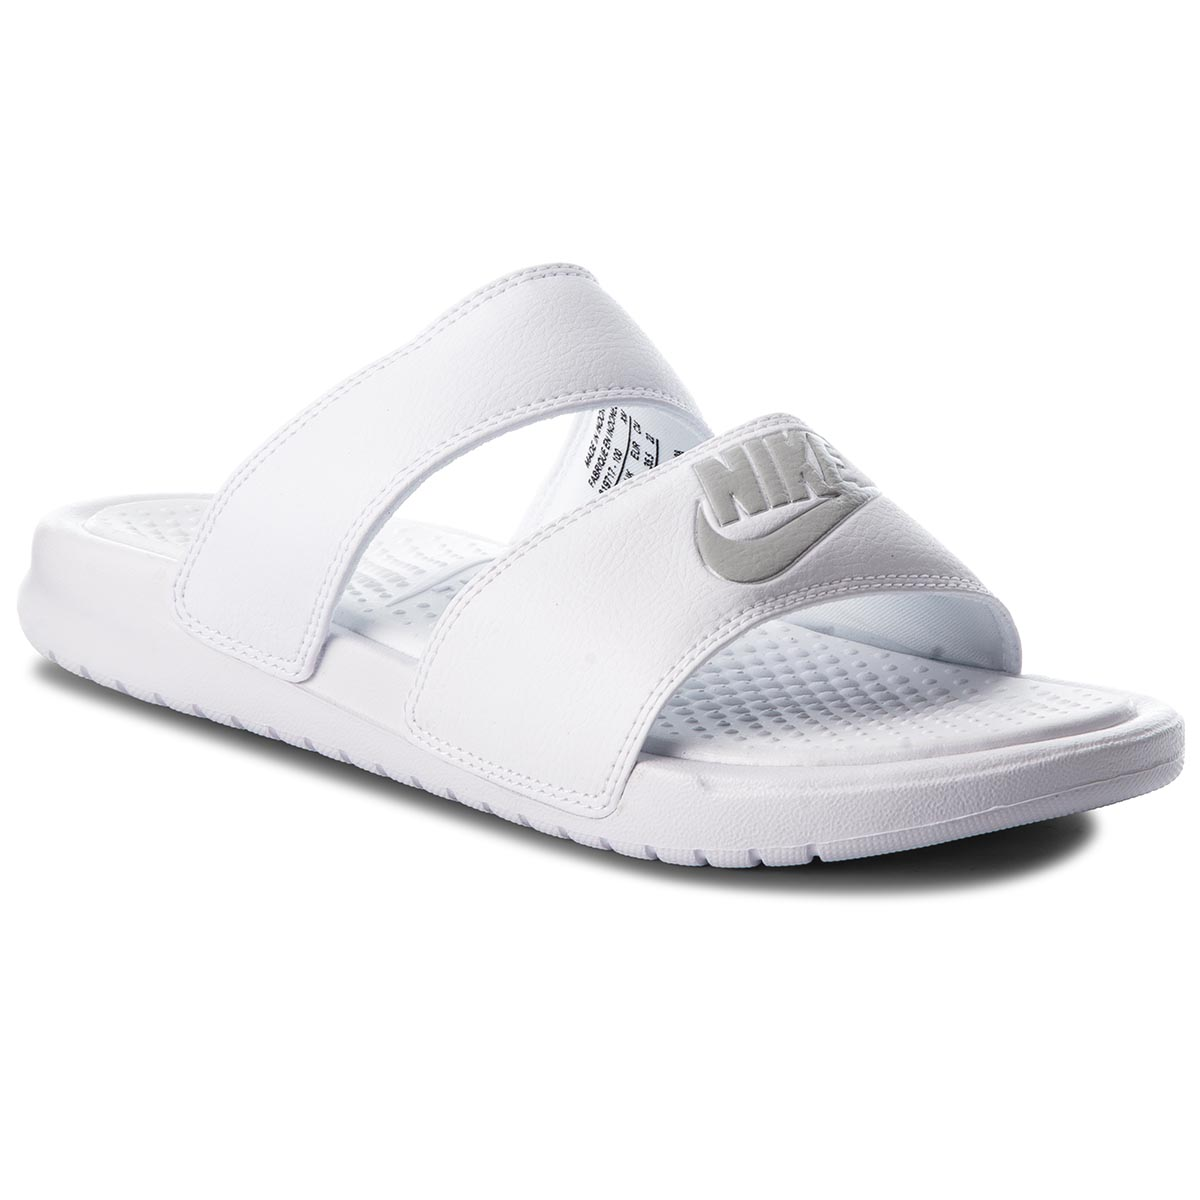 Klapki NIKE - Benassi Duo Ultra Slide 819717 100 White/Metallic Silver